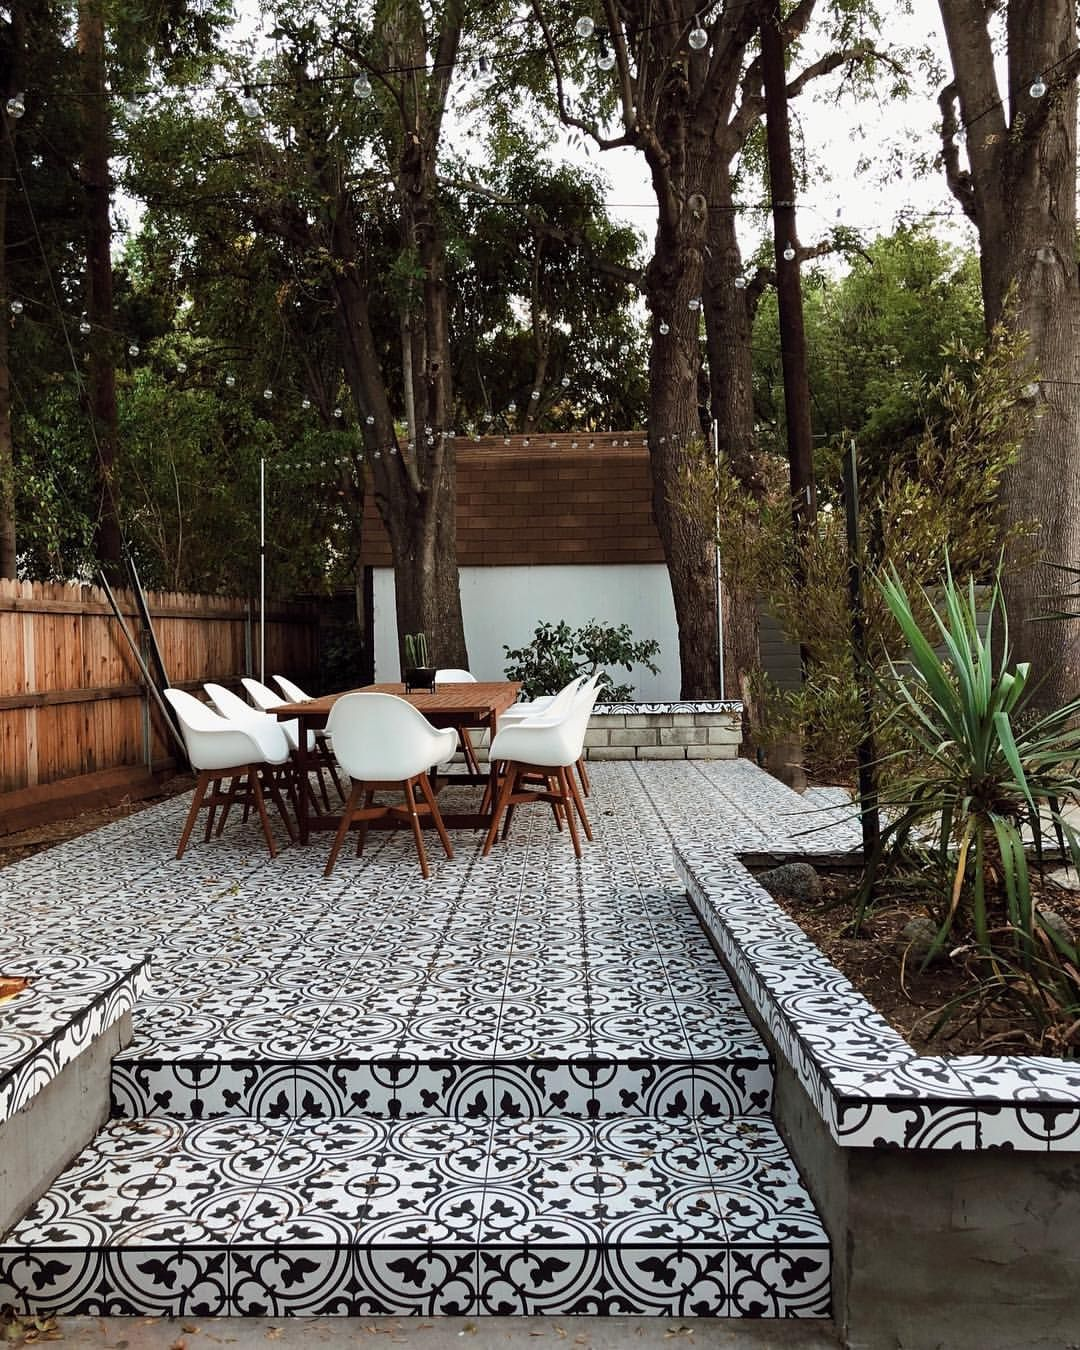 We Can T Get Enough Of Sivanayla S Black White Tiled Patio Our Porcelain Artea Tiles Have The Best Moi Outdoor Tile Patio Outdoor Patio Decor Patio Tiles